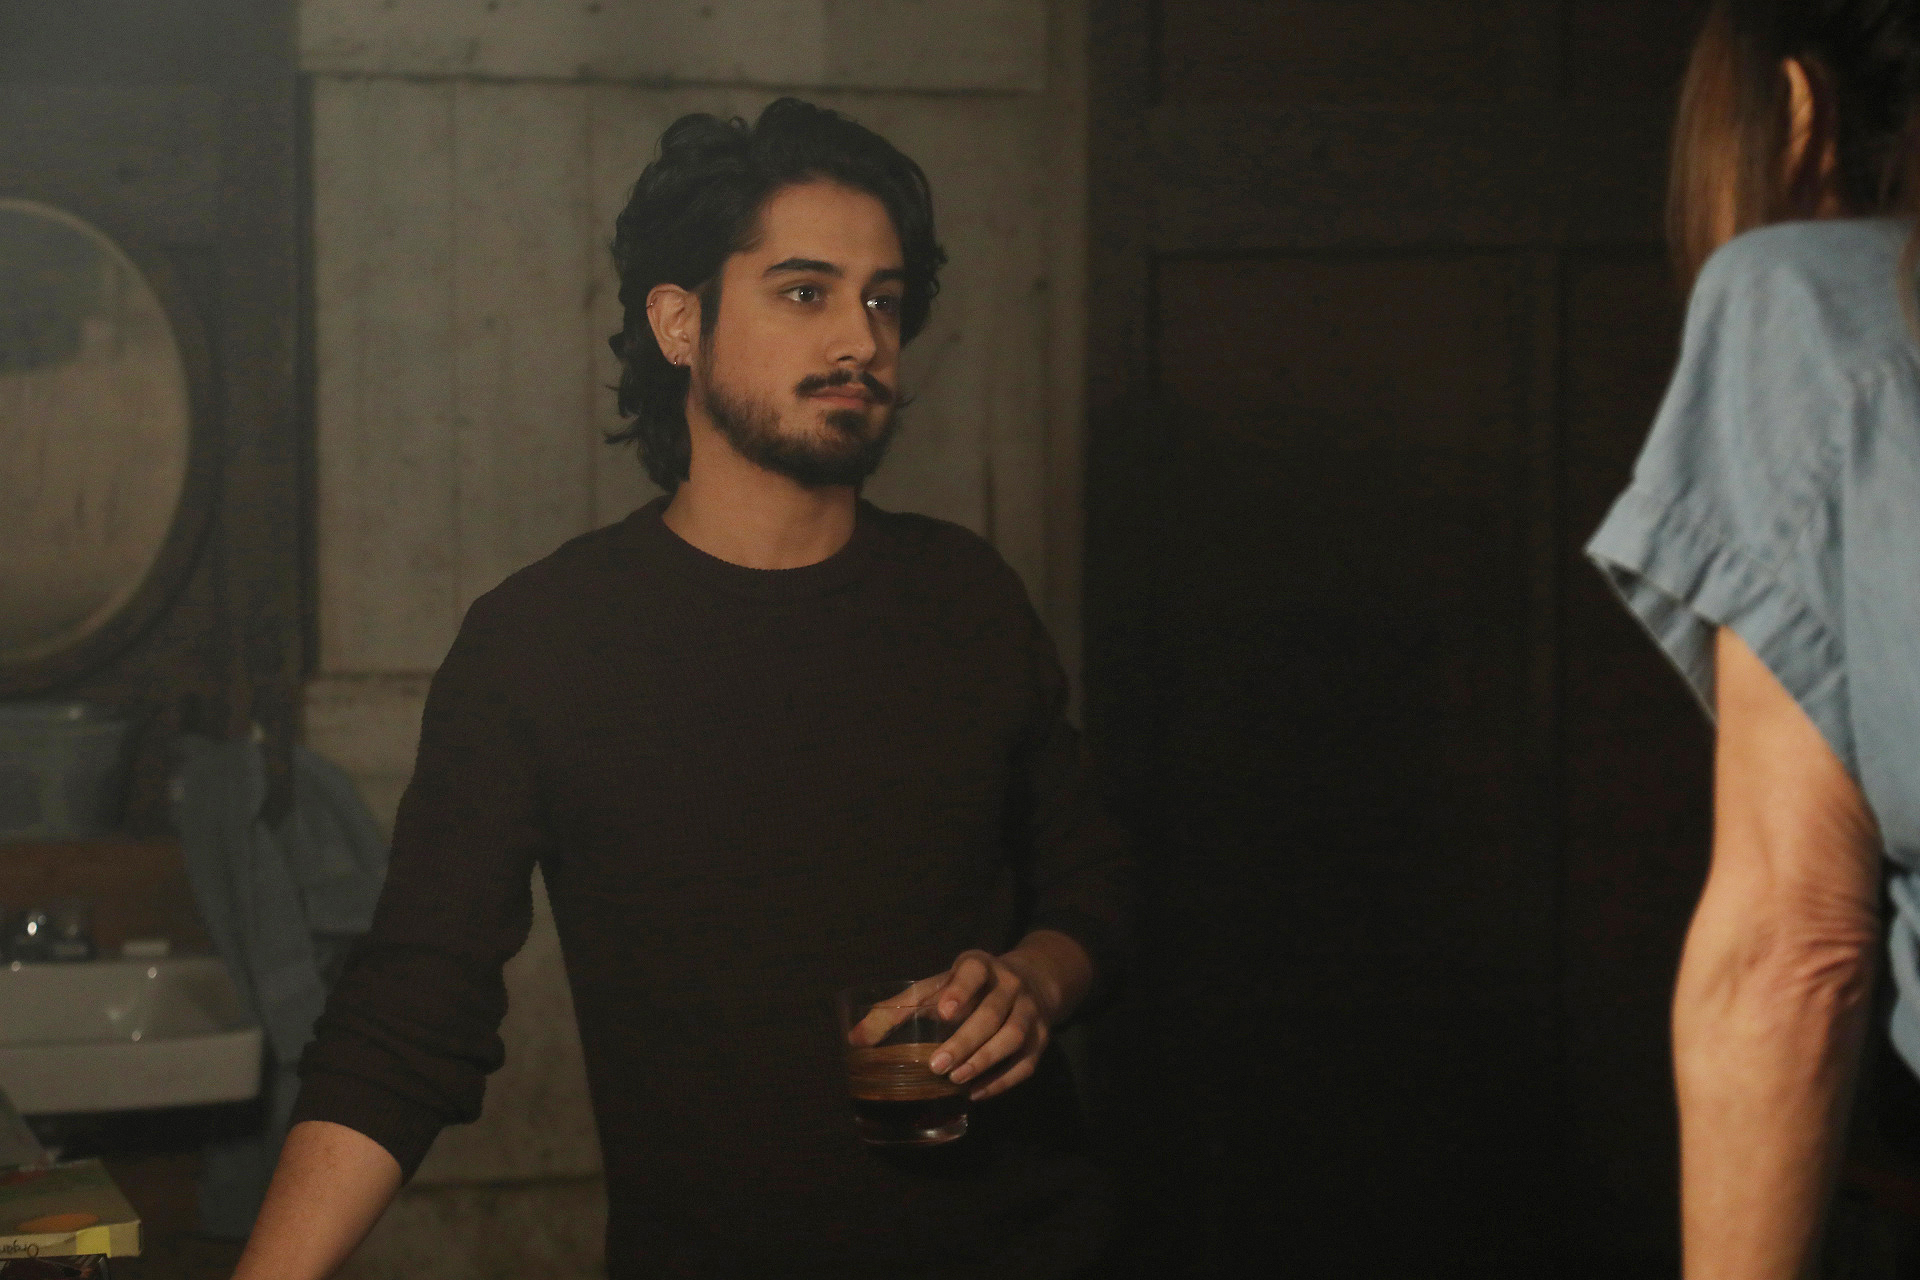 Danny (Avan Jogia) confides in Claire (Lena Olin) in her barn studio in THE ARTIST'S WIFE. Photo by Michael Lavine.